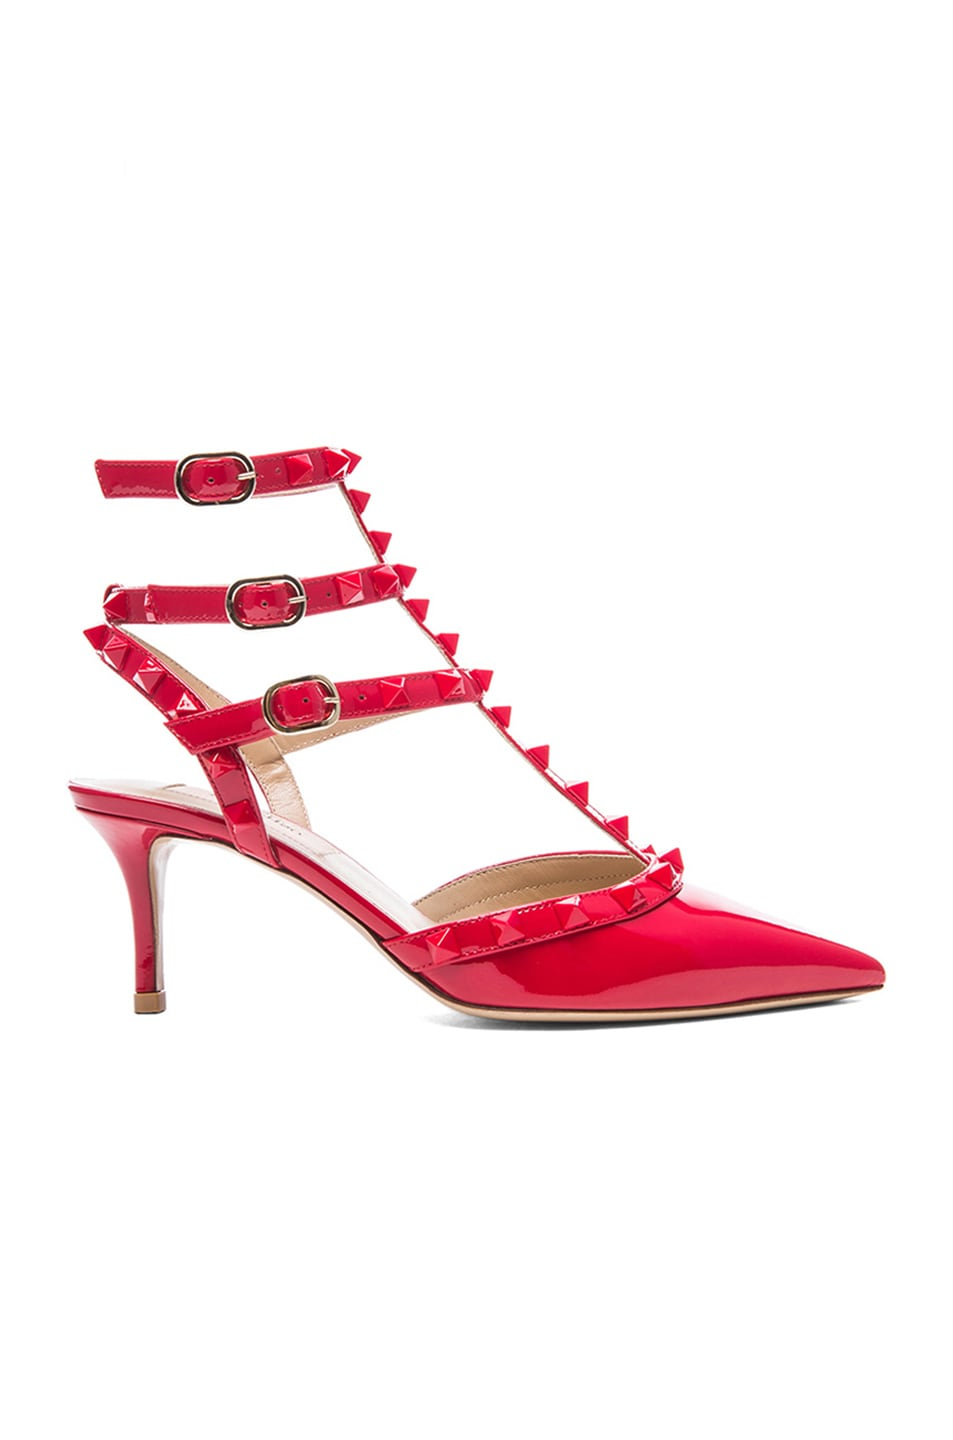 Image 1 of Valentino Rockstud Punkouture Patent Slingbacks T.65 in Red